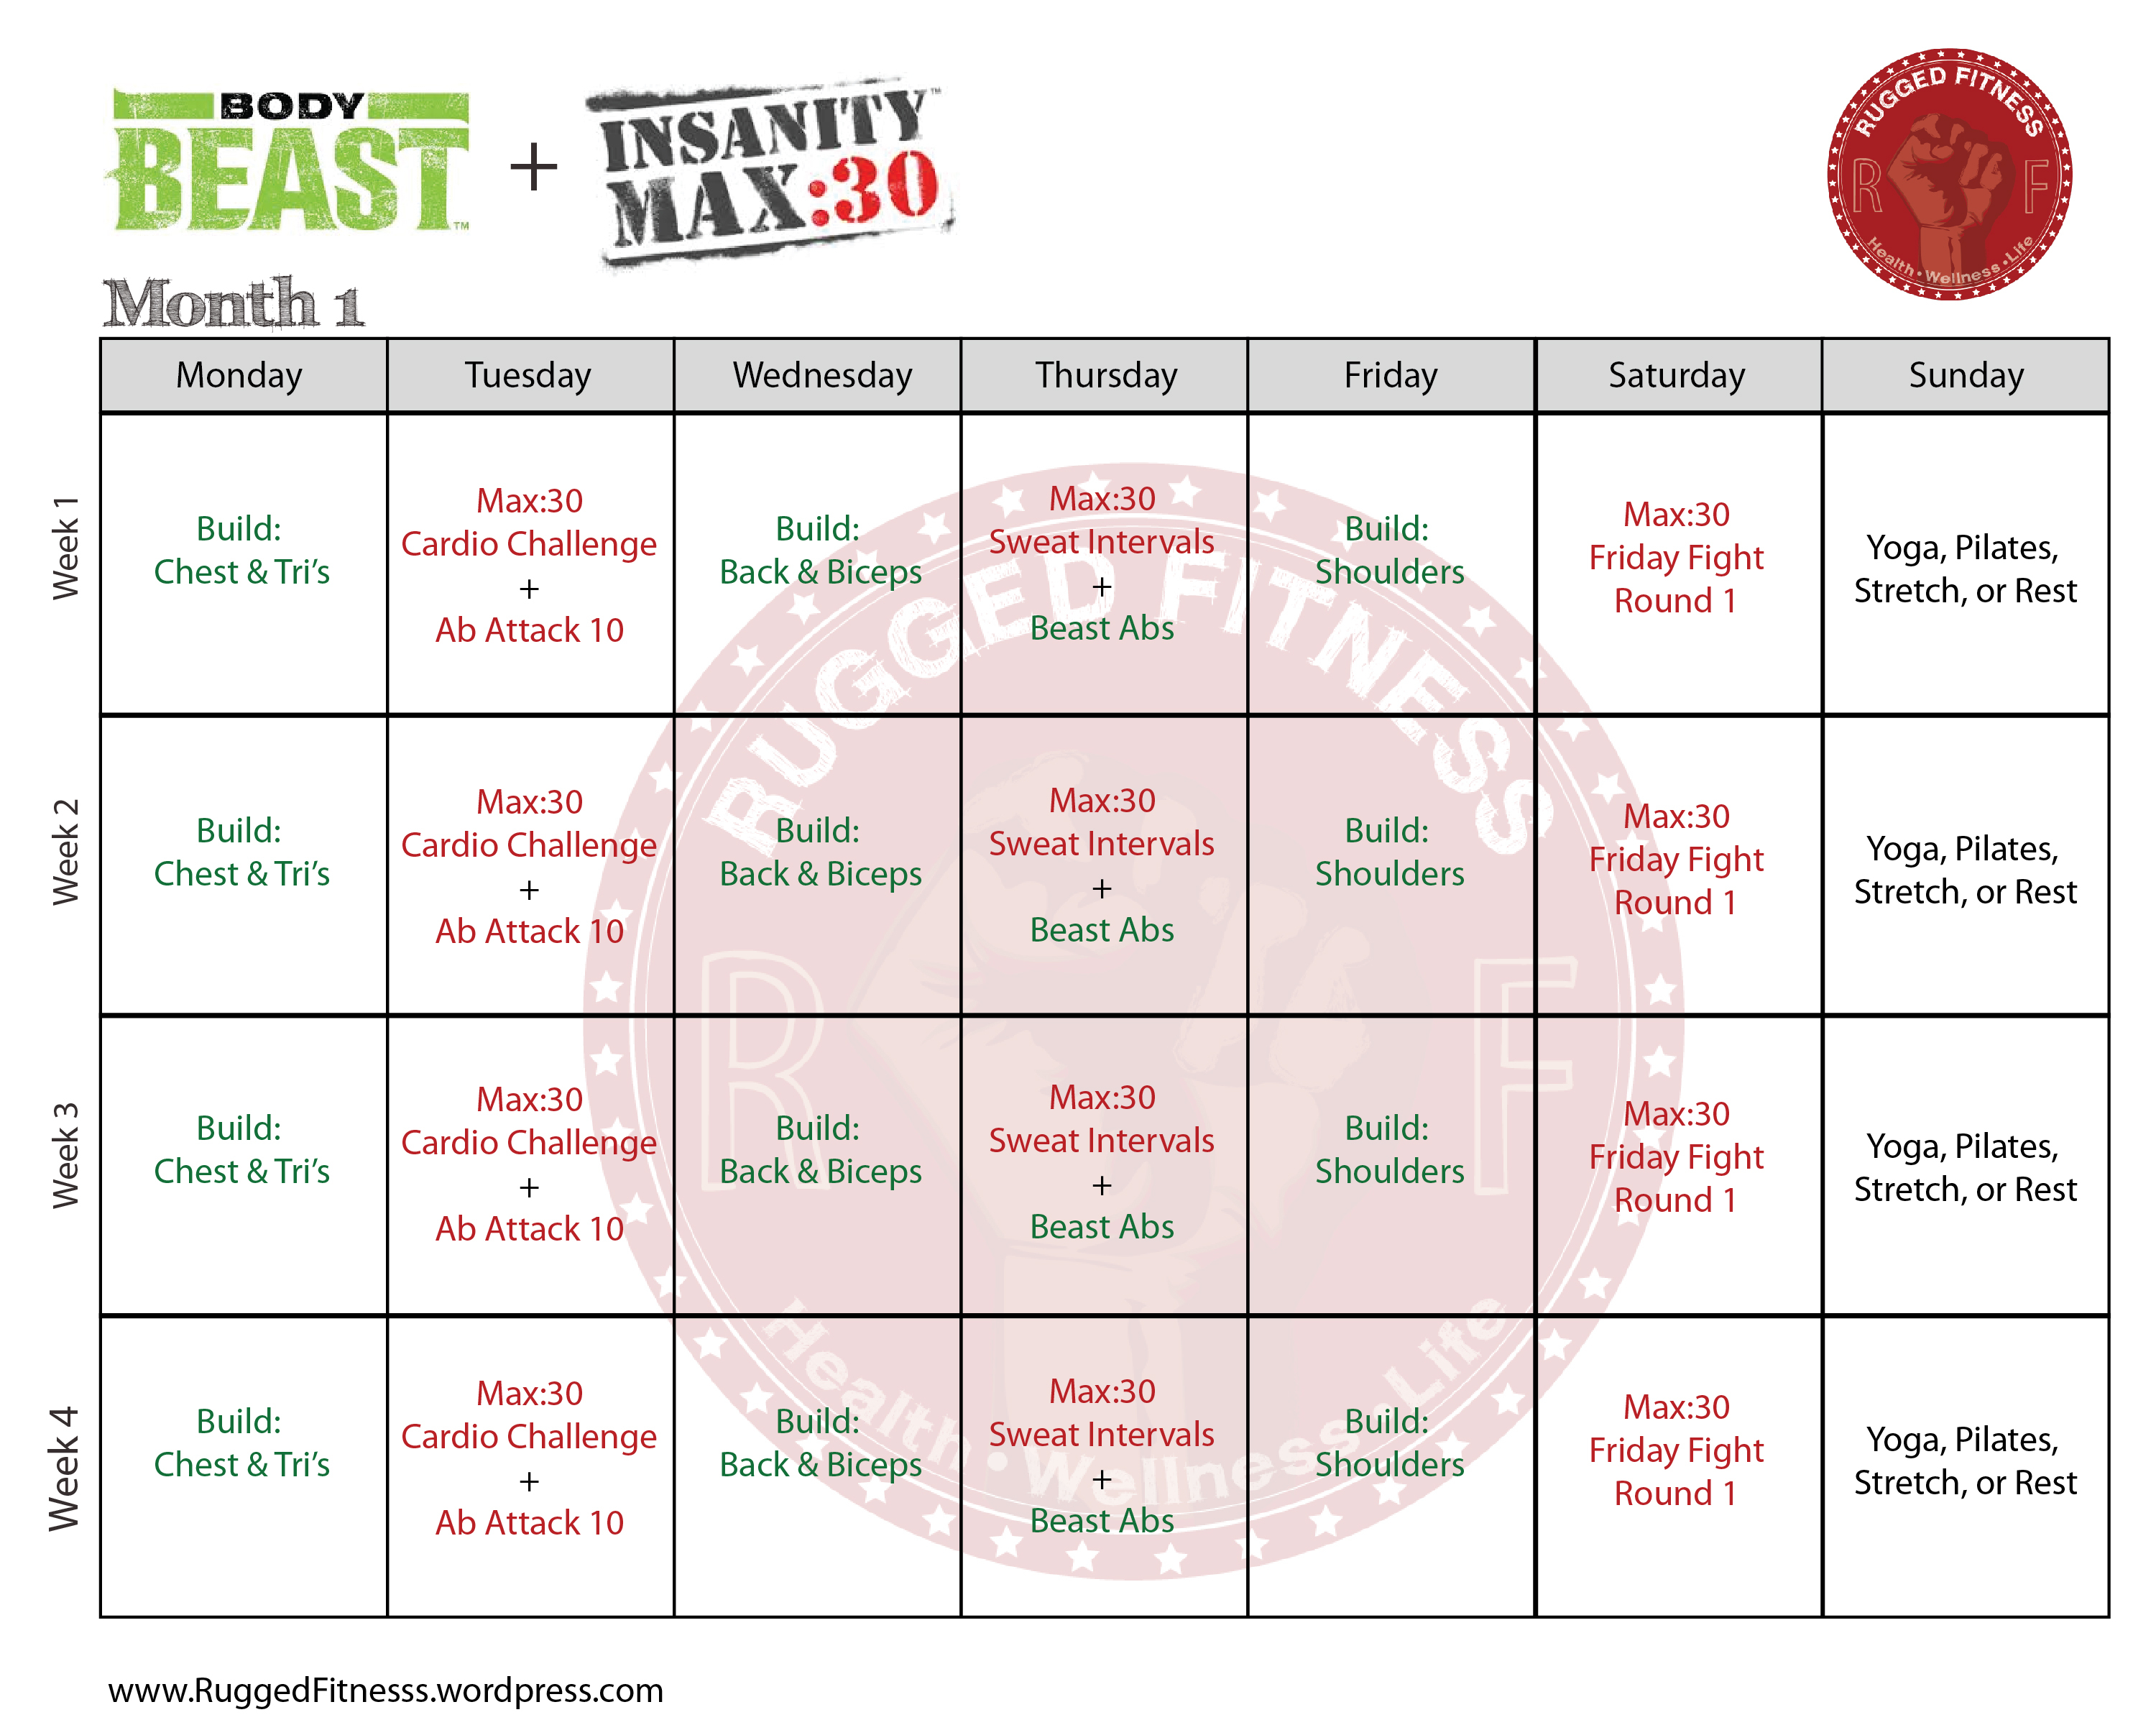 Body Beast + Insanity: Max 30 Hybrid Schedule | Rugged Fitnesss pertaining to Insanity Max 30 Calendar